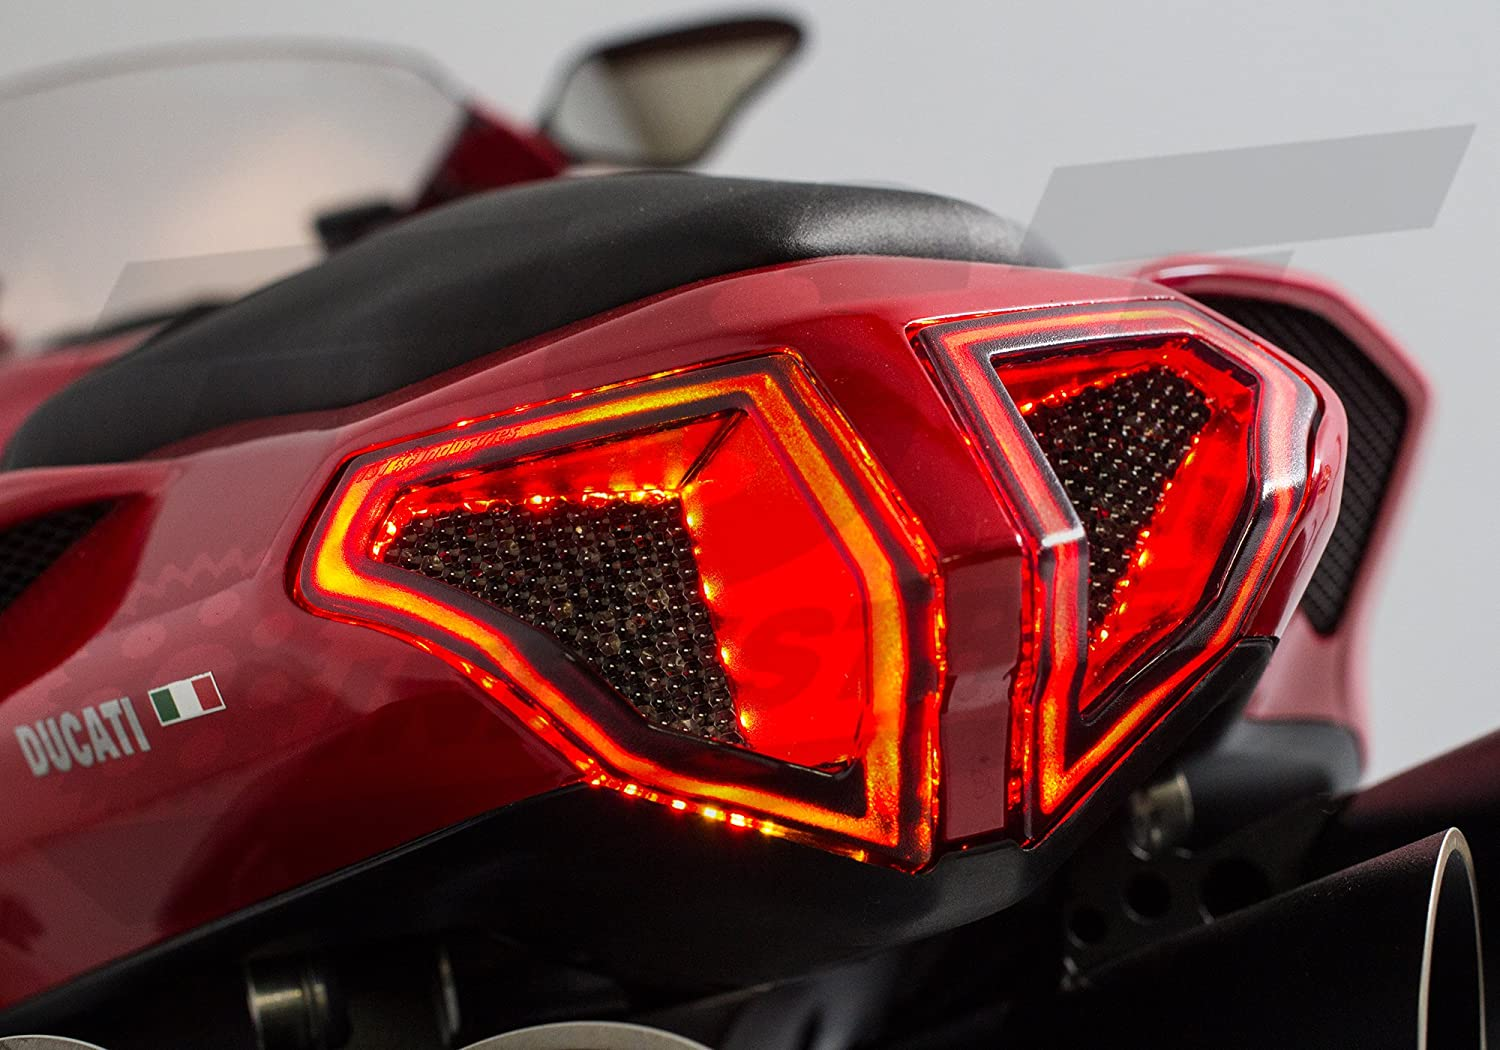 Integrated Programmable Tail Light for Ducati 848 1098 1198 Smoked Lens